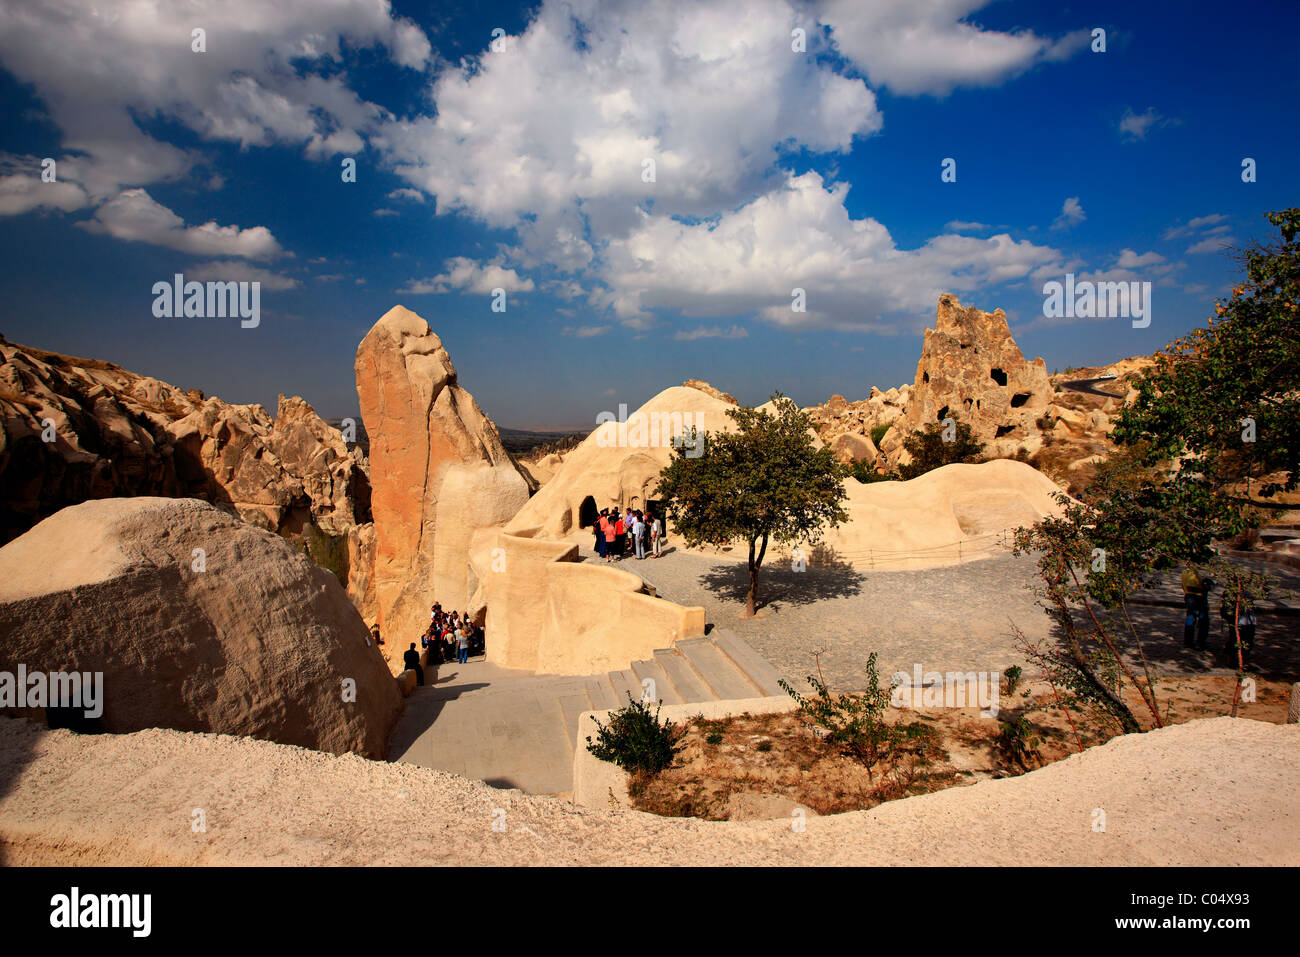 Small part (its 'heart') of Goreme Open Air Museum and National Park. Nevsehir, Cappadocia, Turkey. - Stock Image